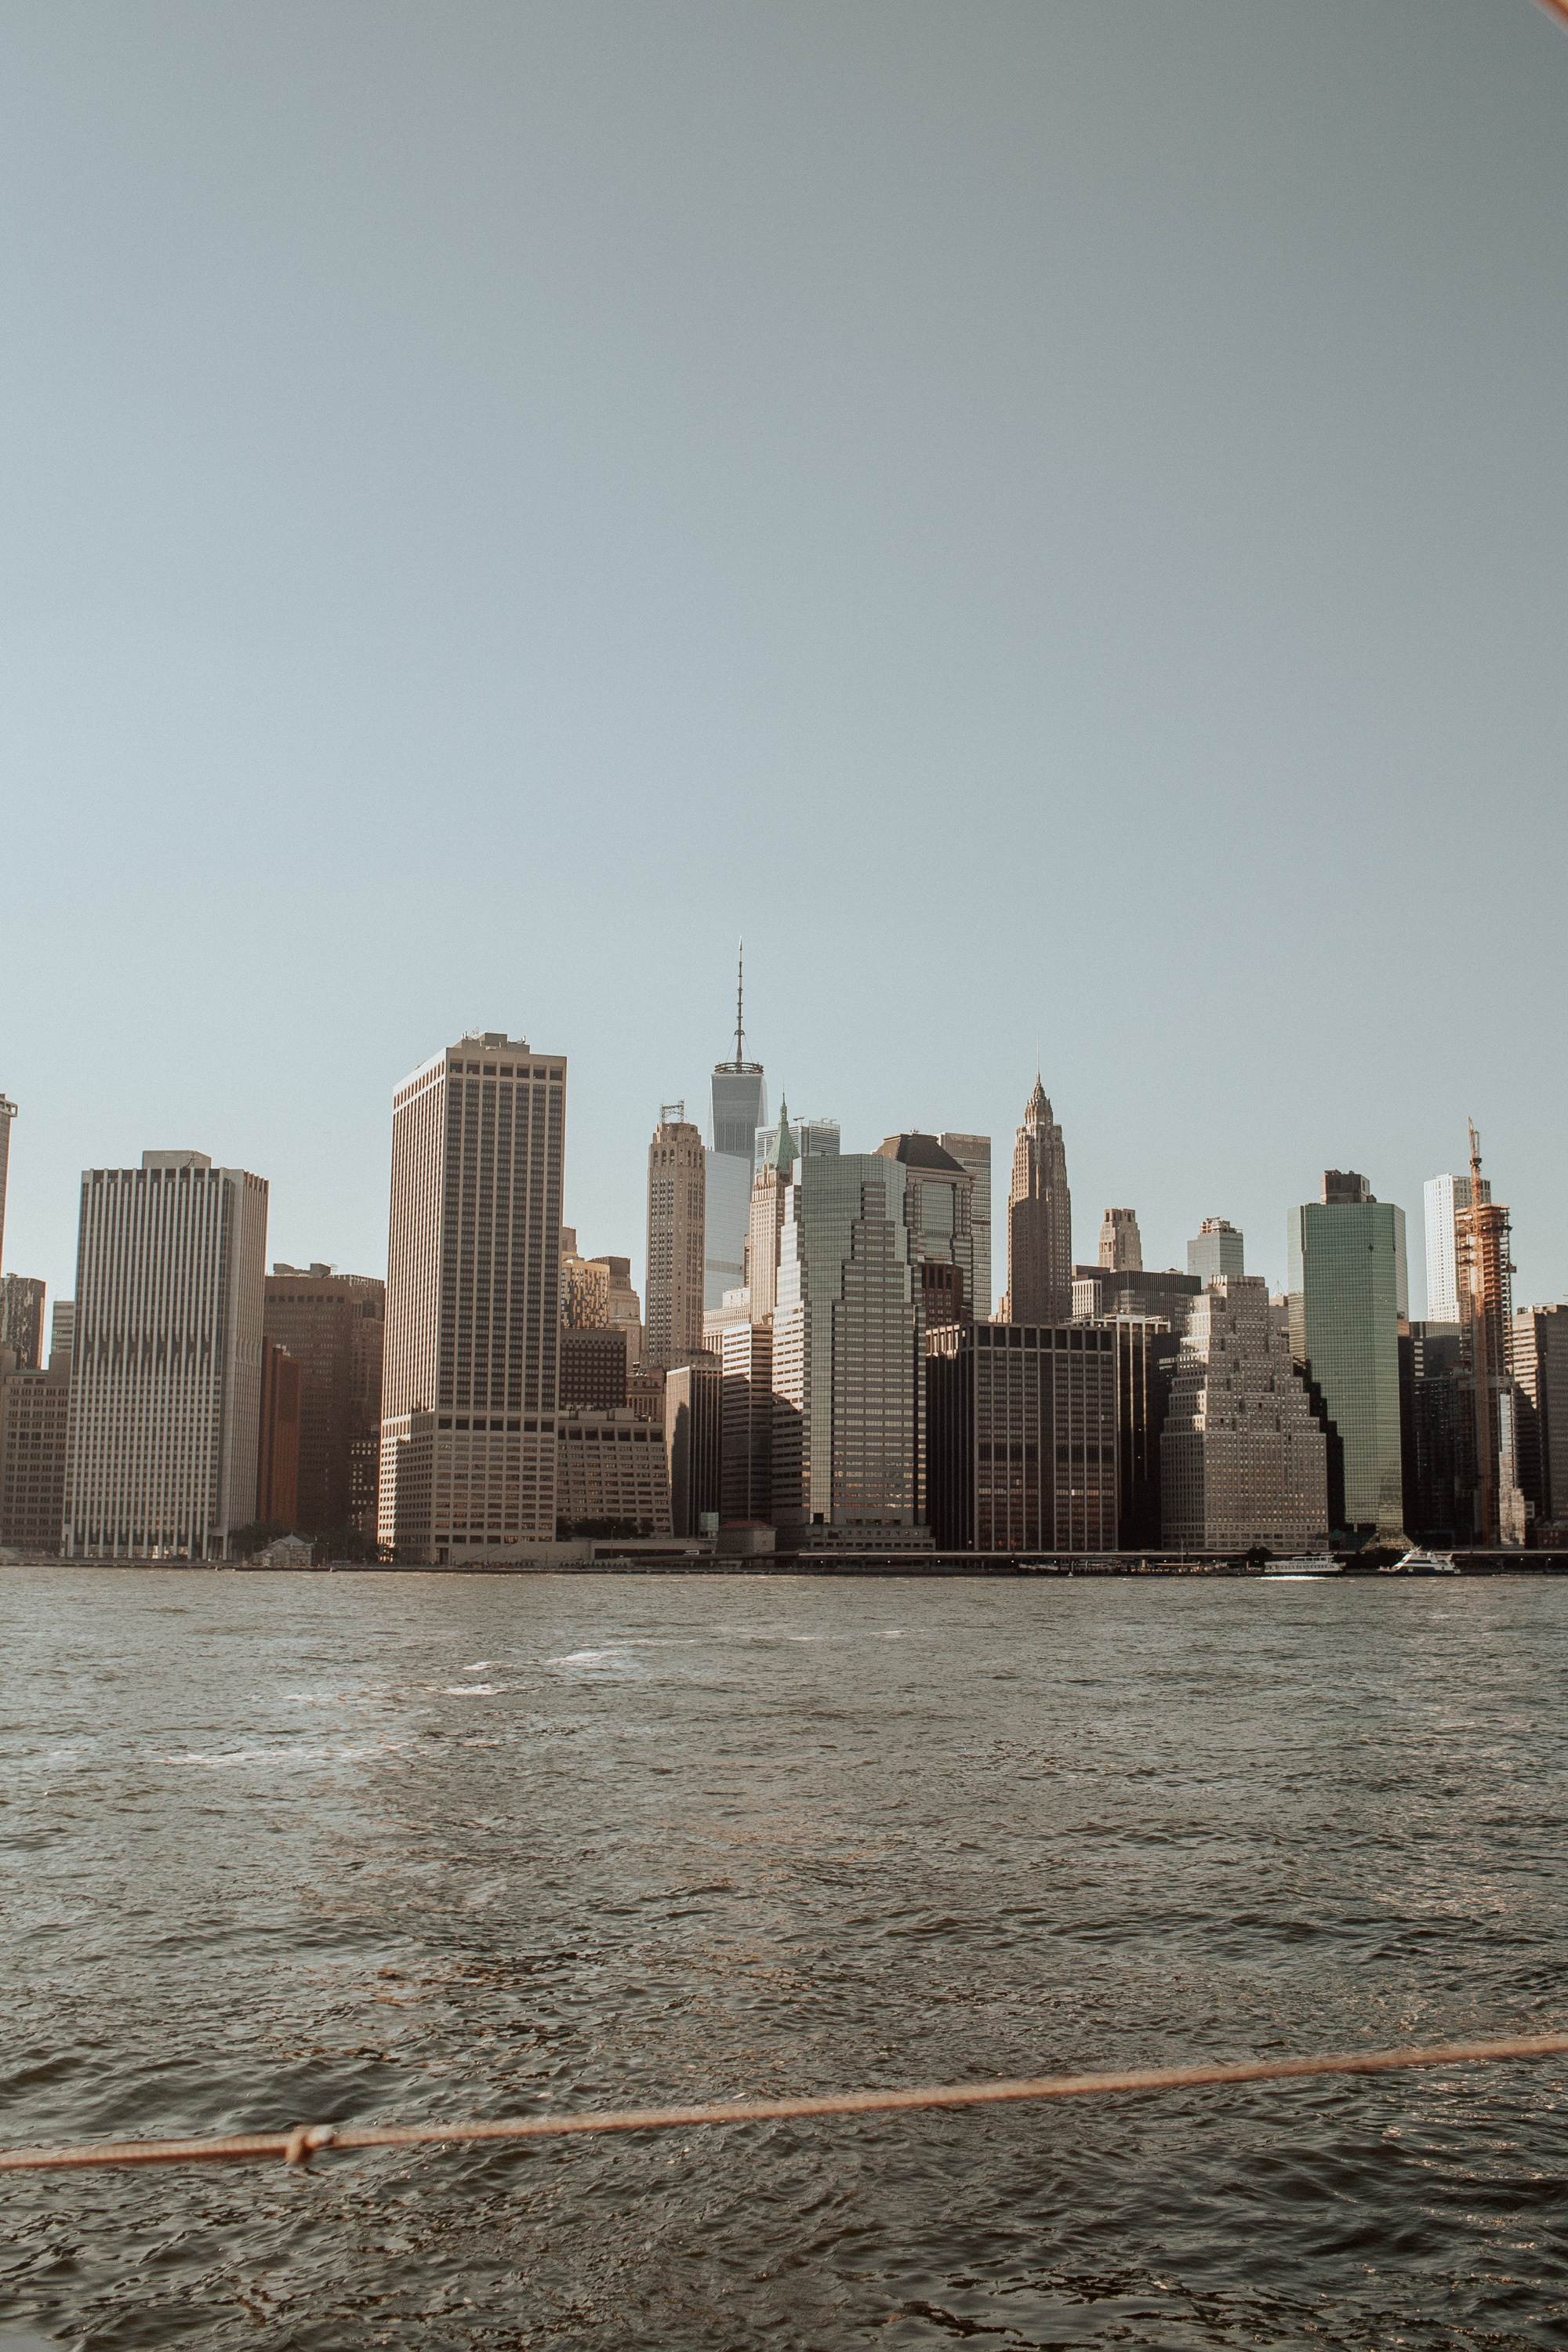 view of Manhattan from across the Hudson River.